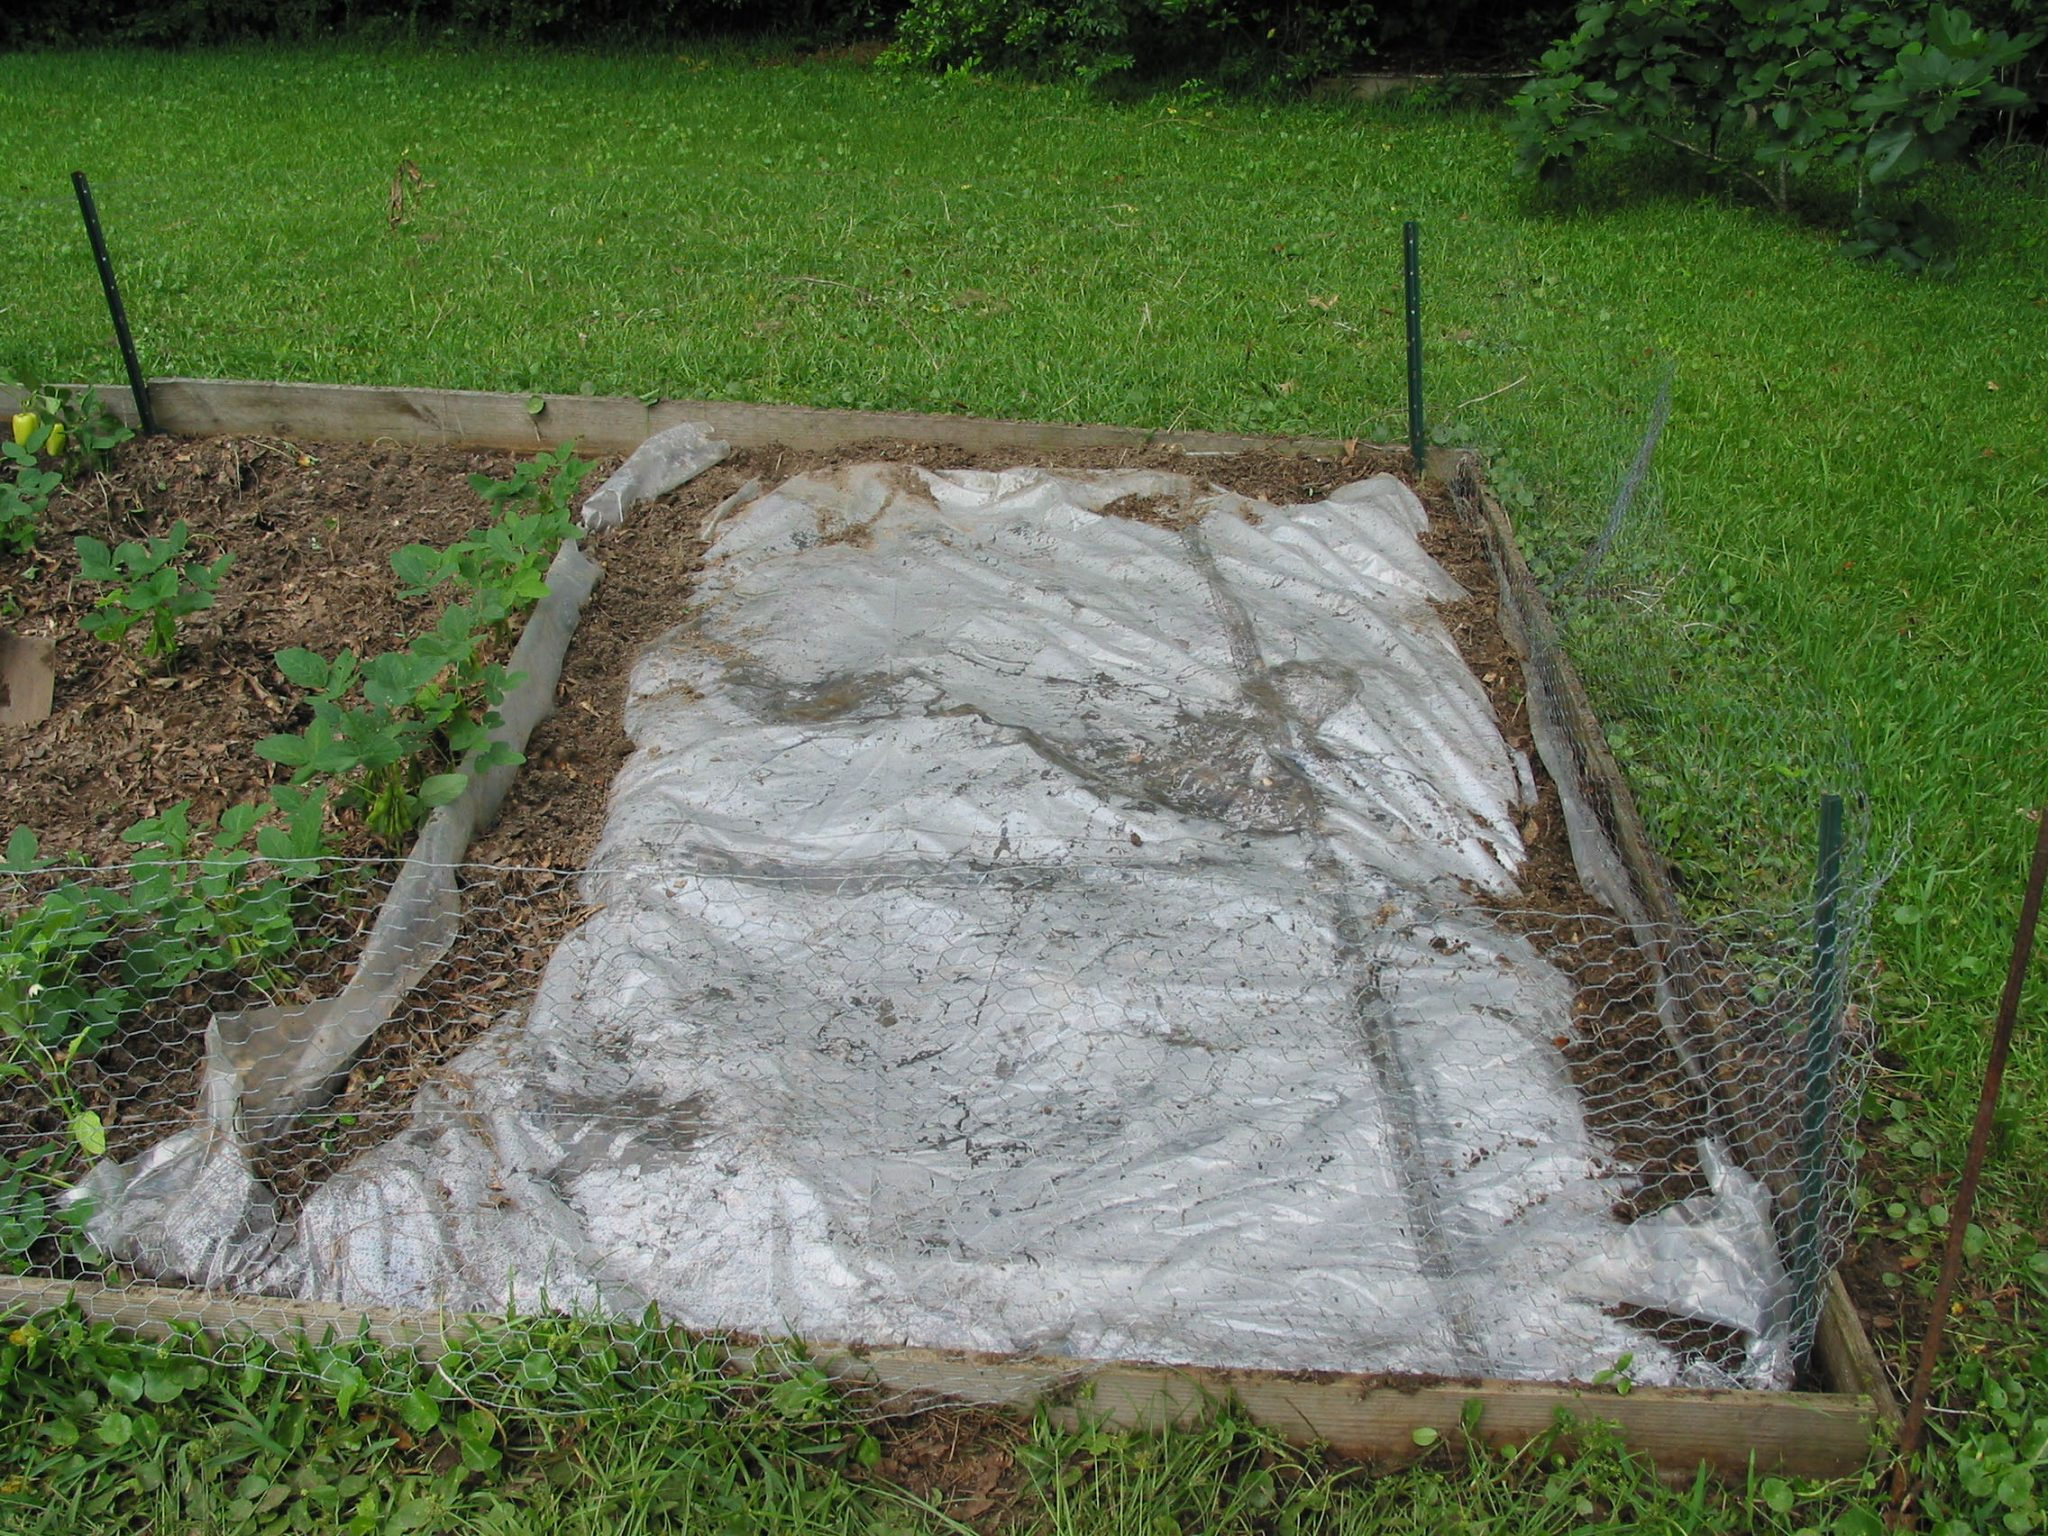 Soil solarization can provide good weed control in home and commercial vegetable production.